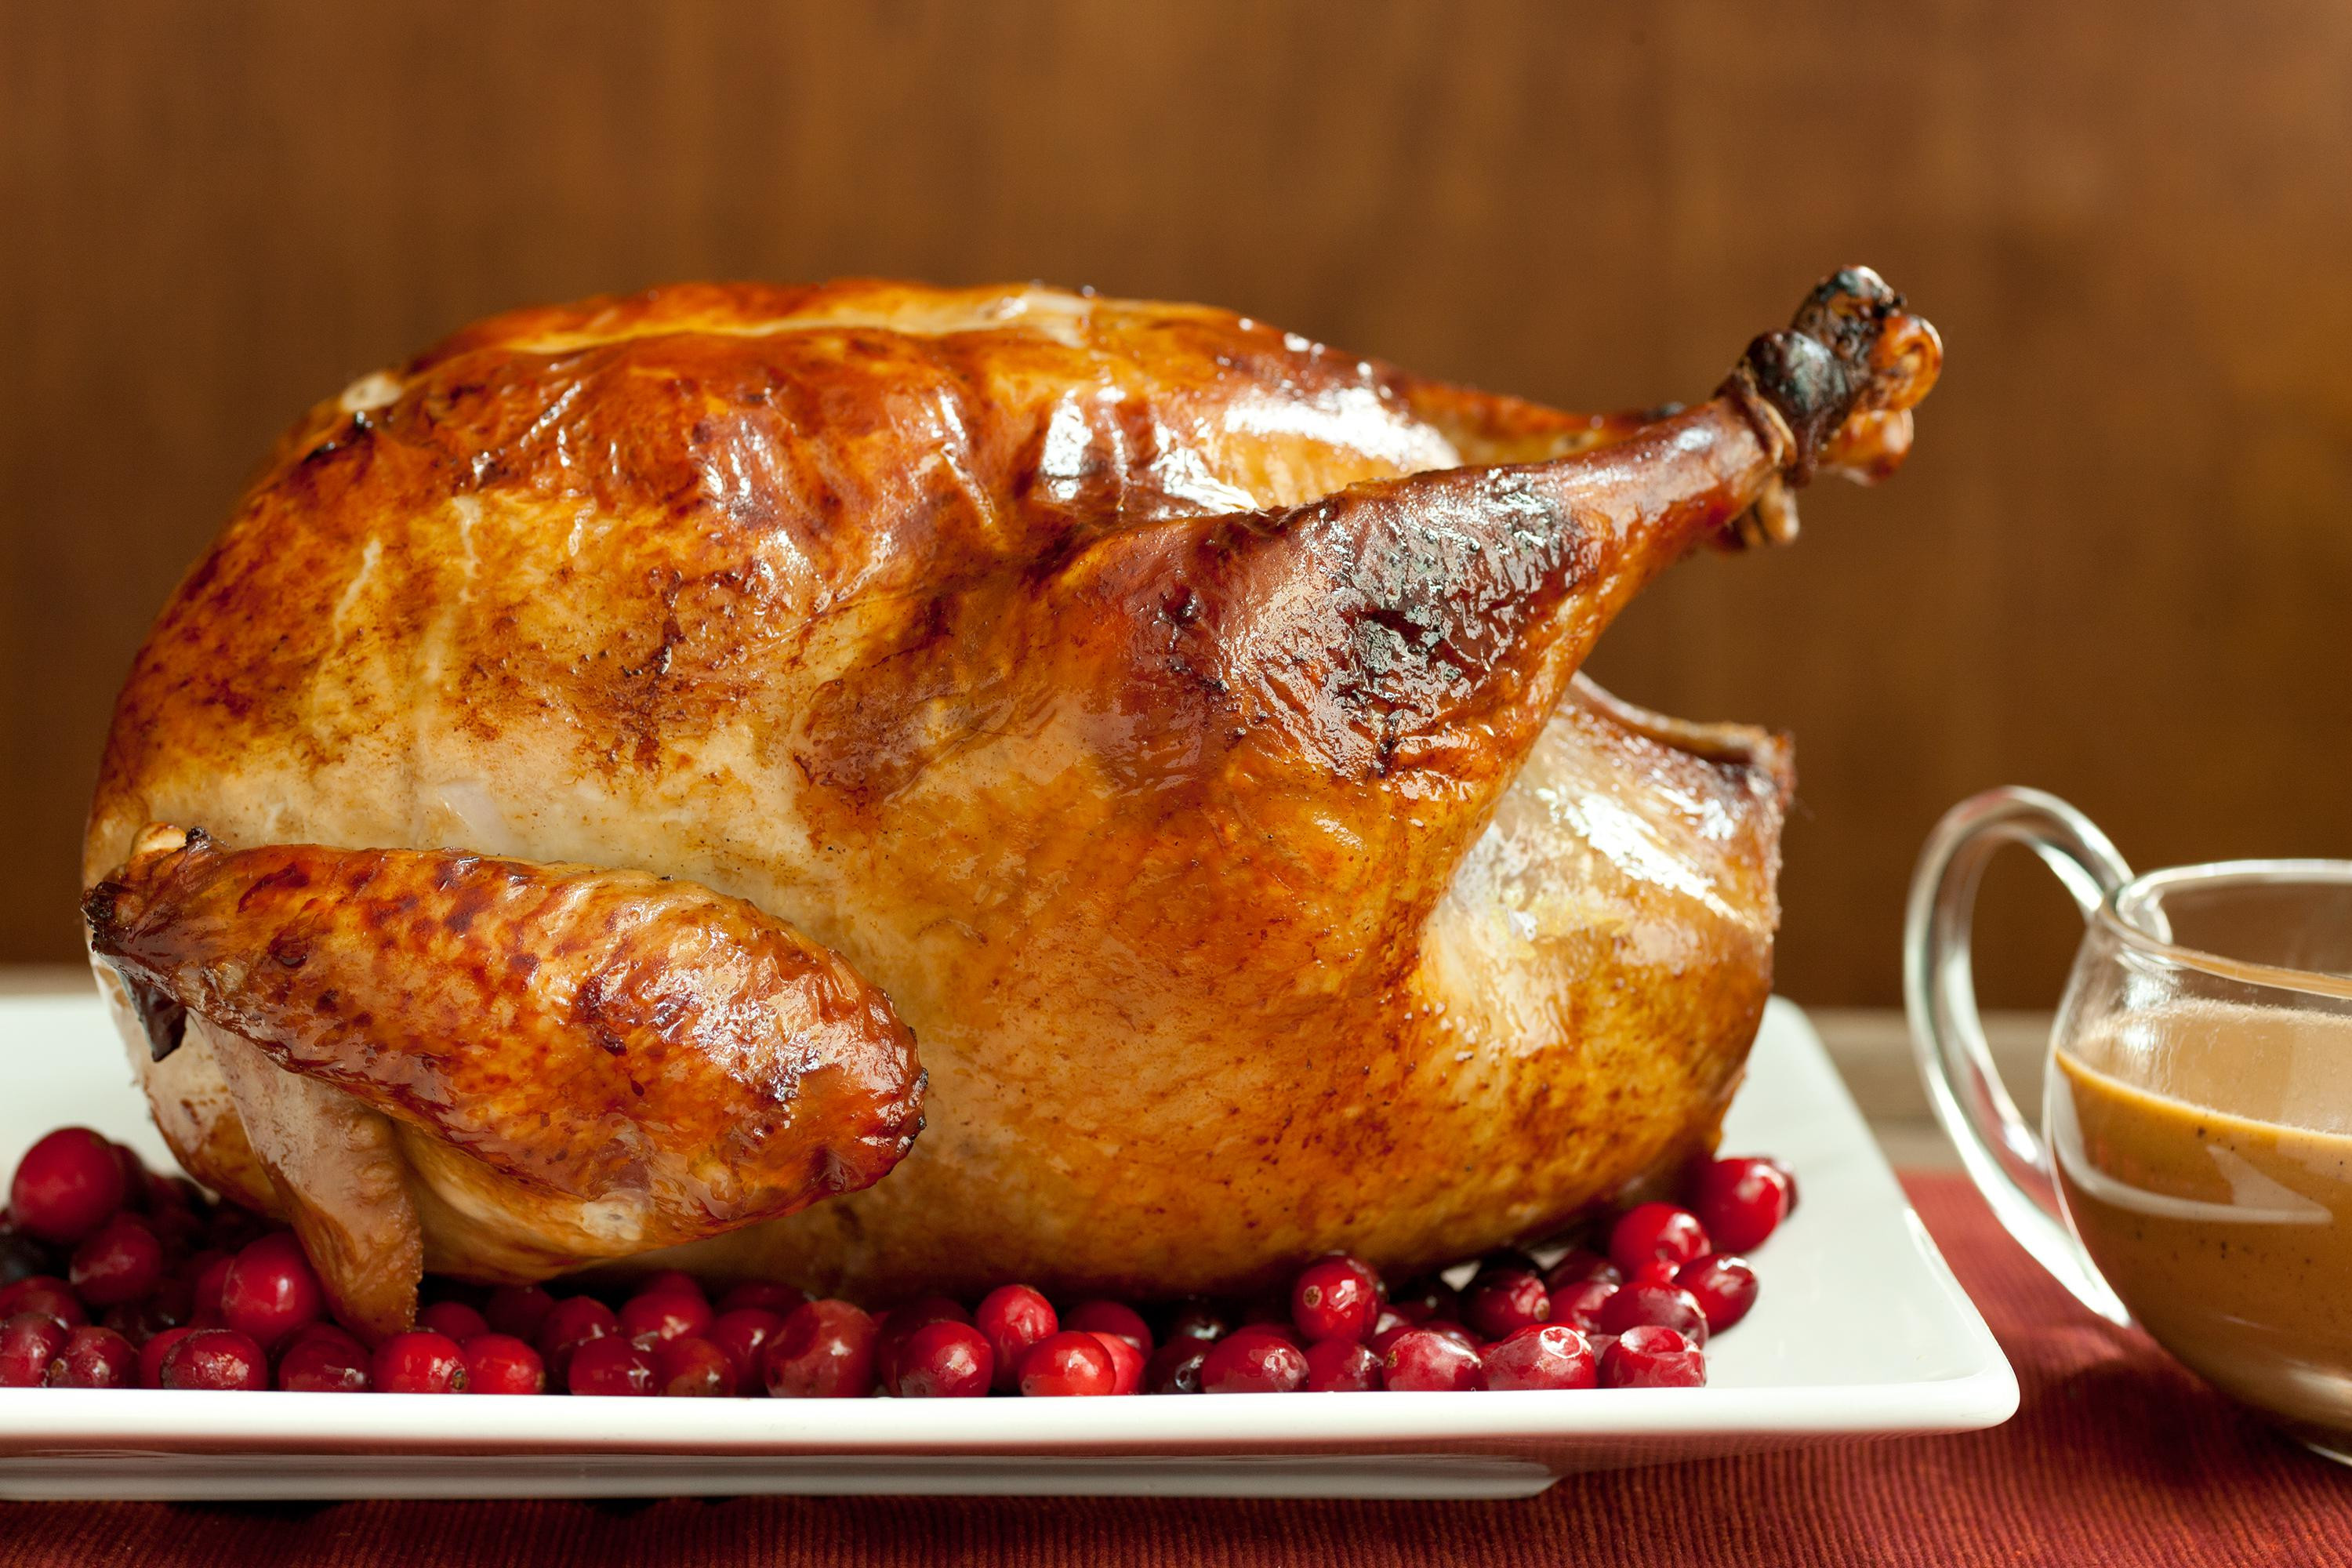 Turkey Picture For Thanksgiving  Easy Brined Roasted Turkey with Creamed Gravy Recipe